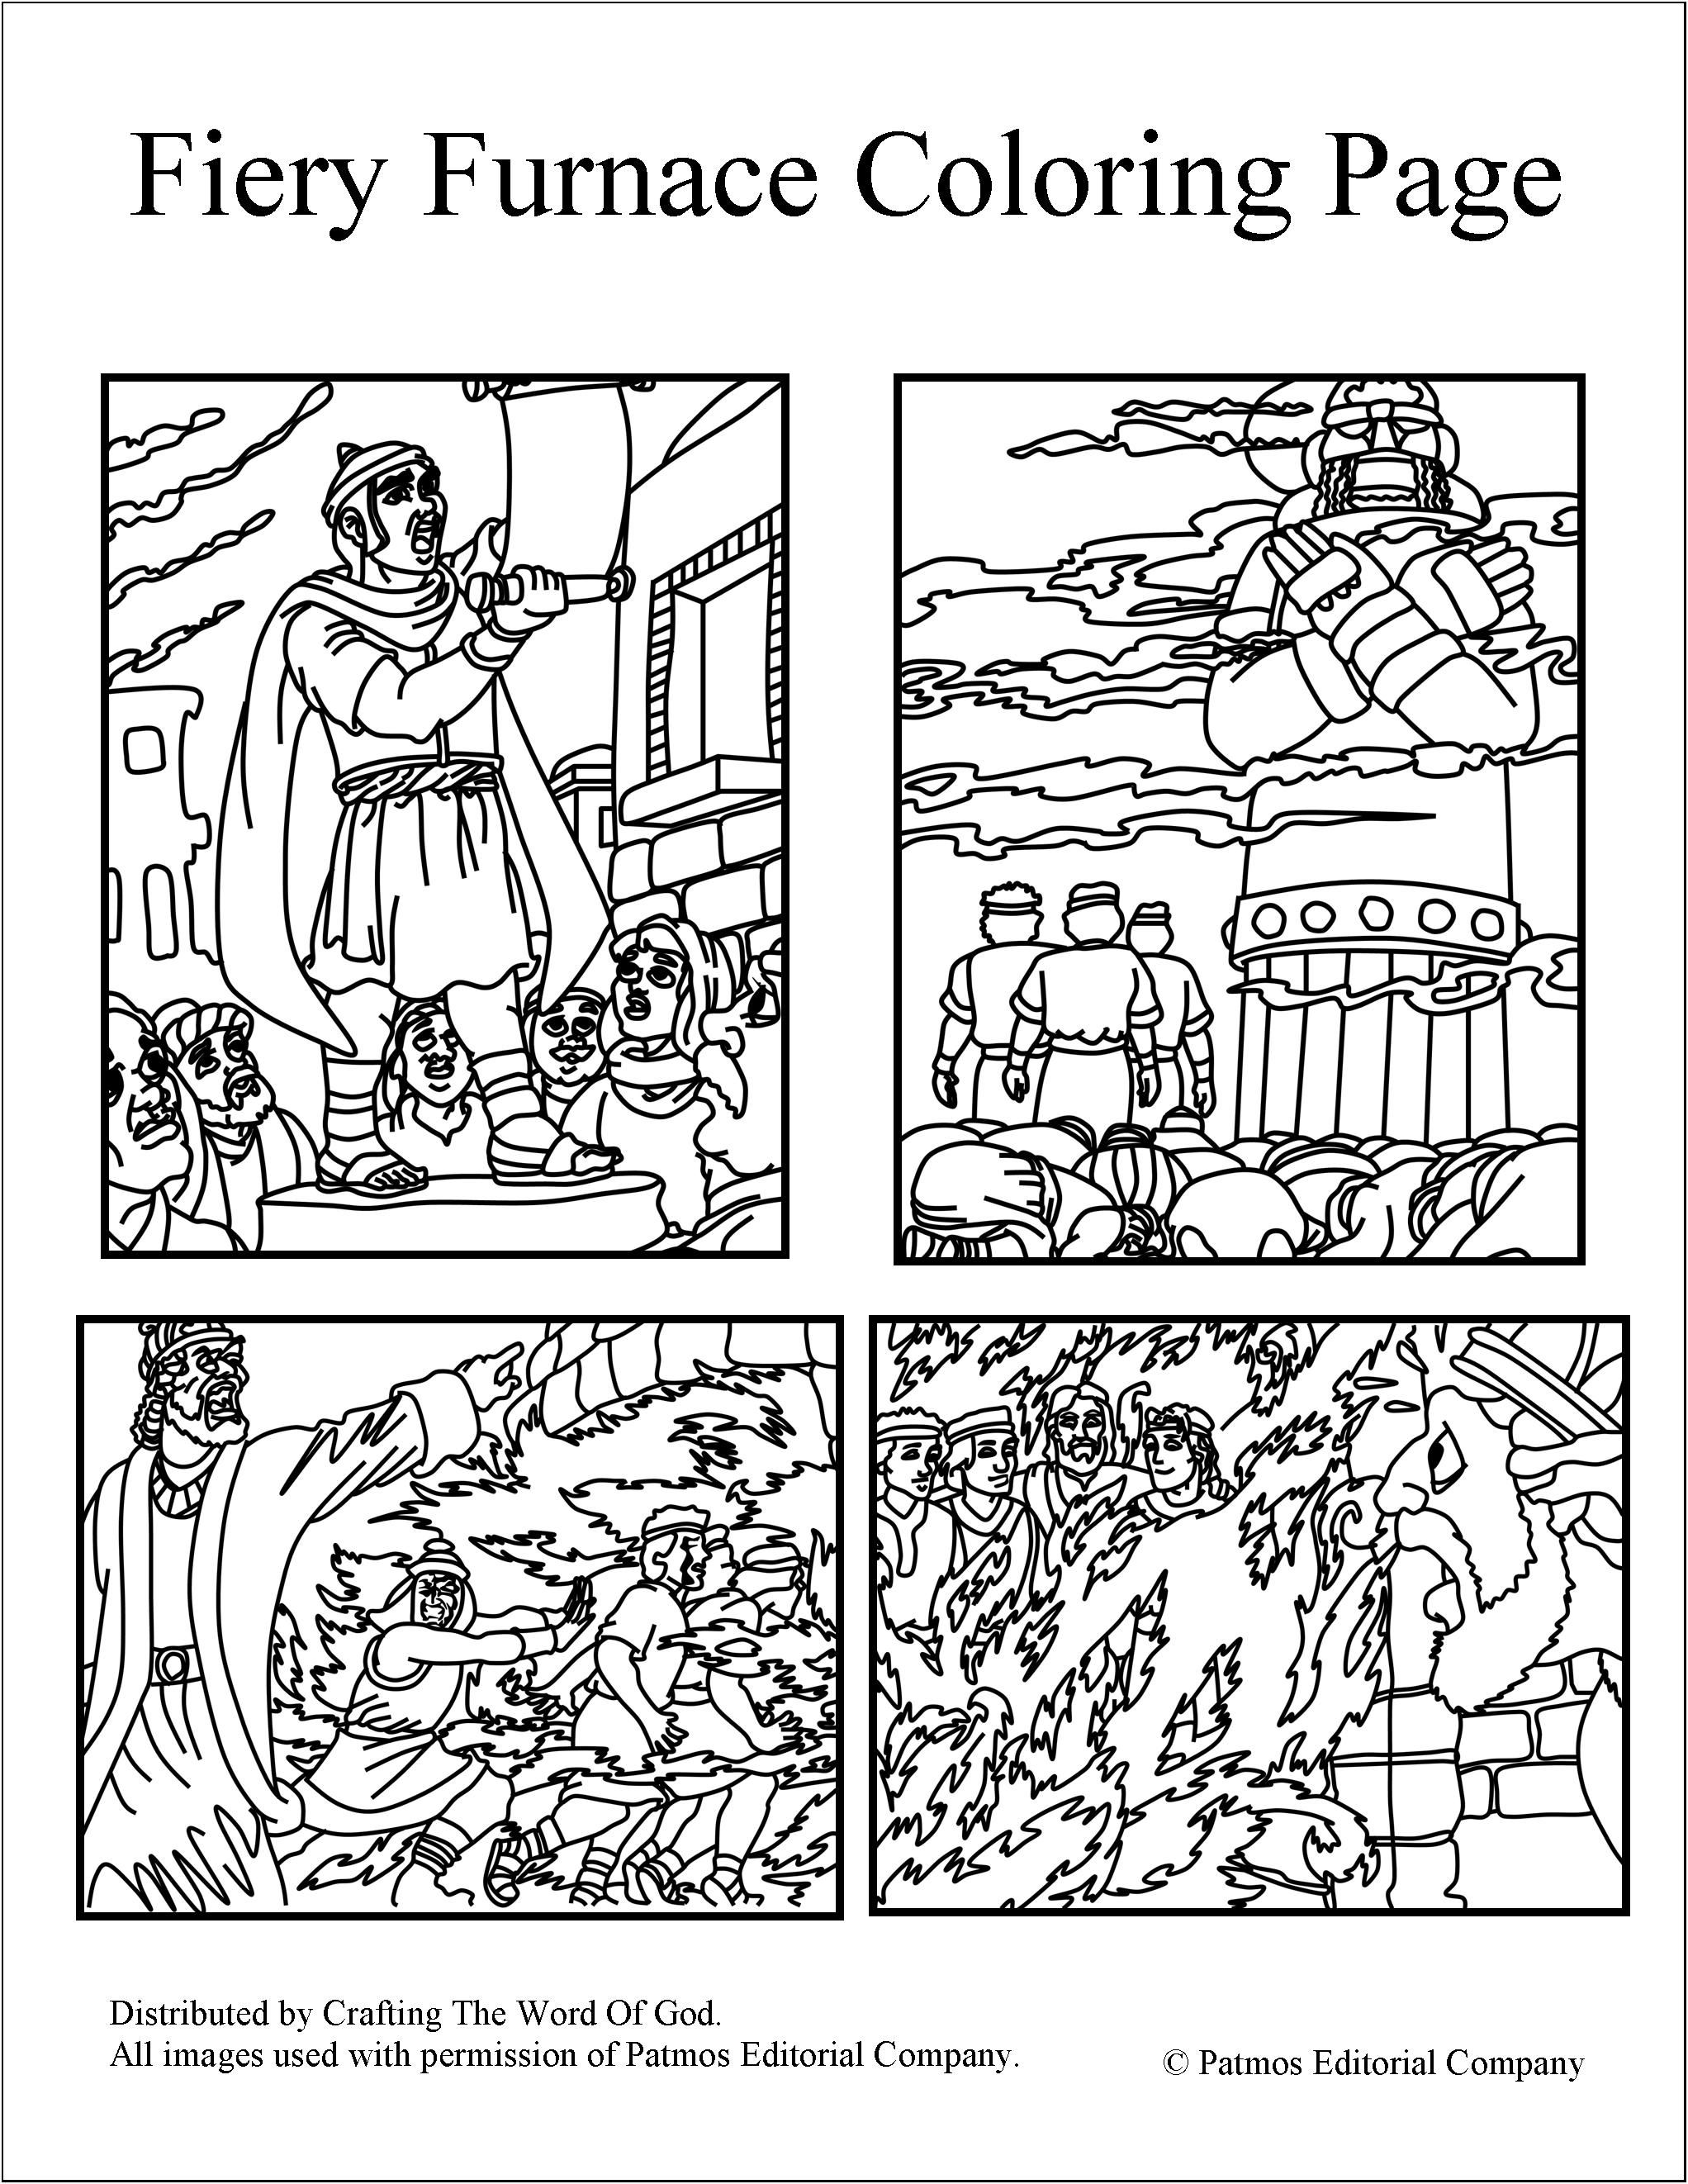 fiery furnace coloring page daniel and fiery furnace coloring page sketch coloring page page fiery coloring furnace